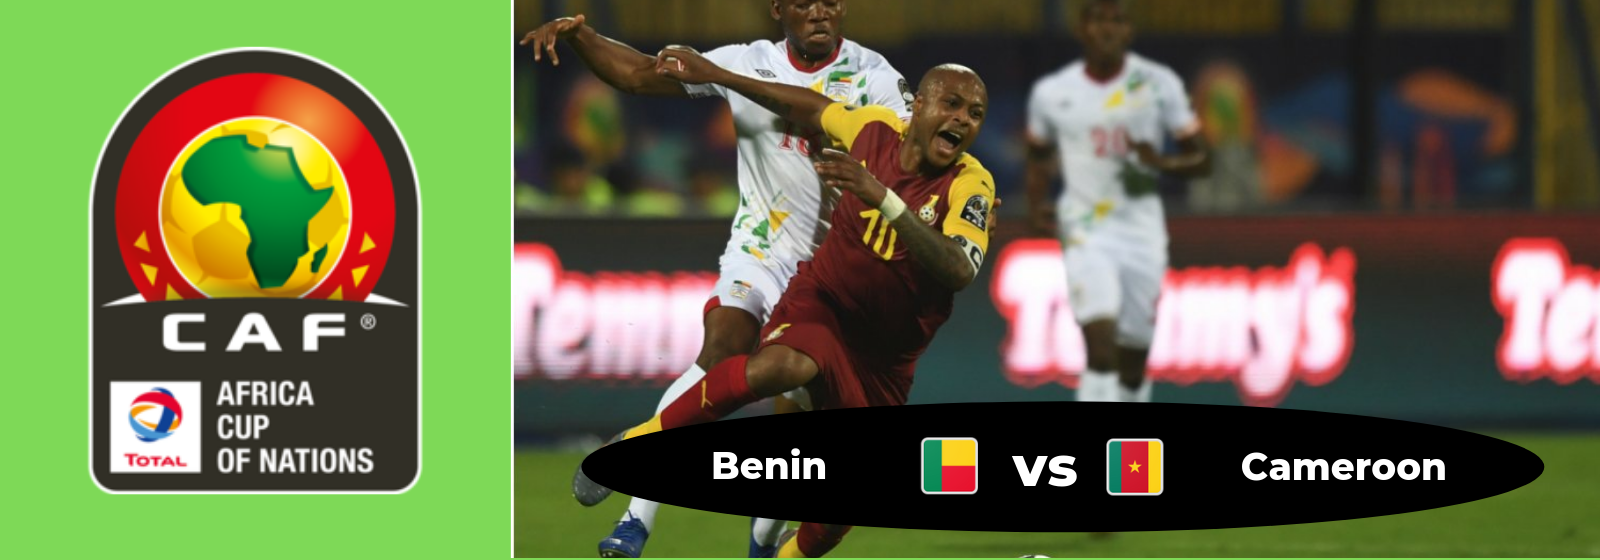 Africa Cup of Nations Benin Vs. Cameroon Asian Connect